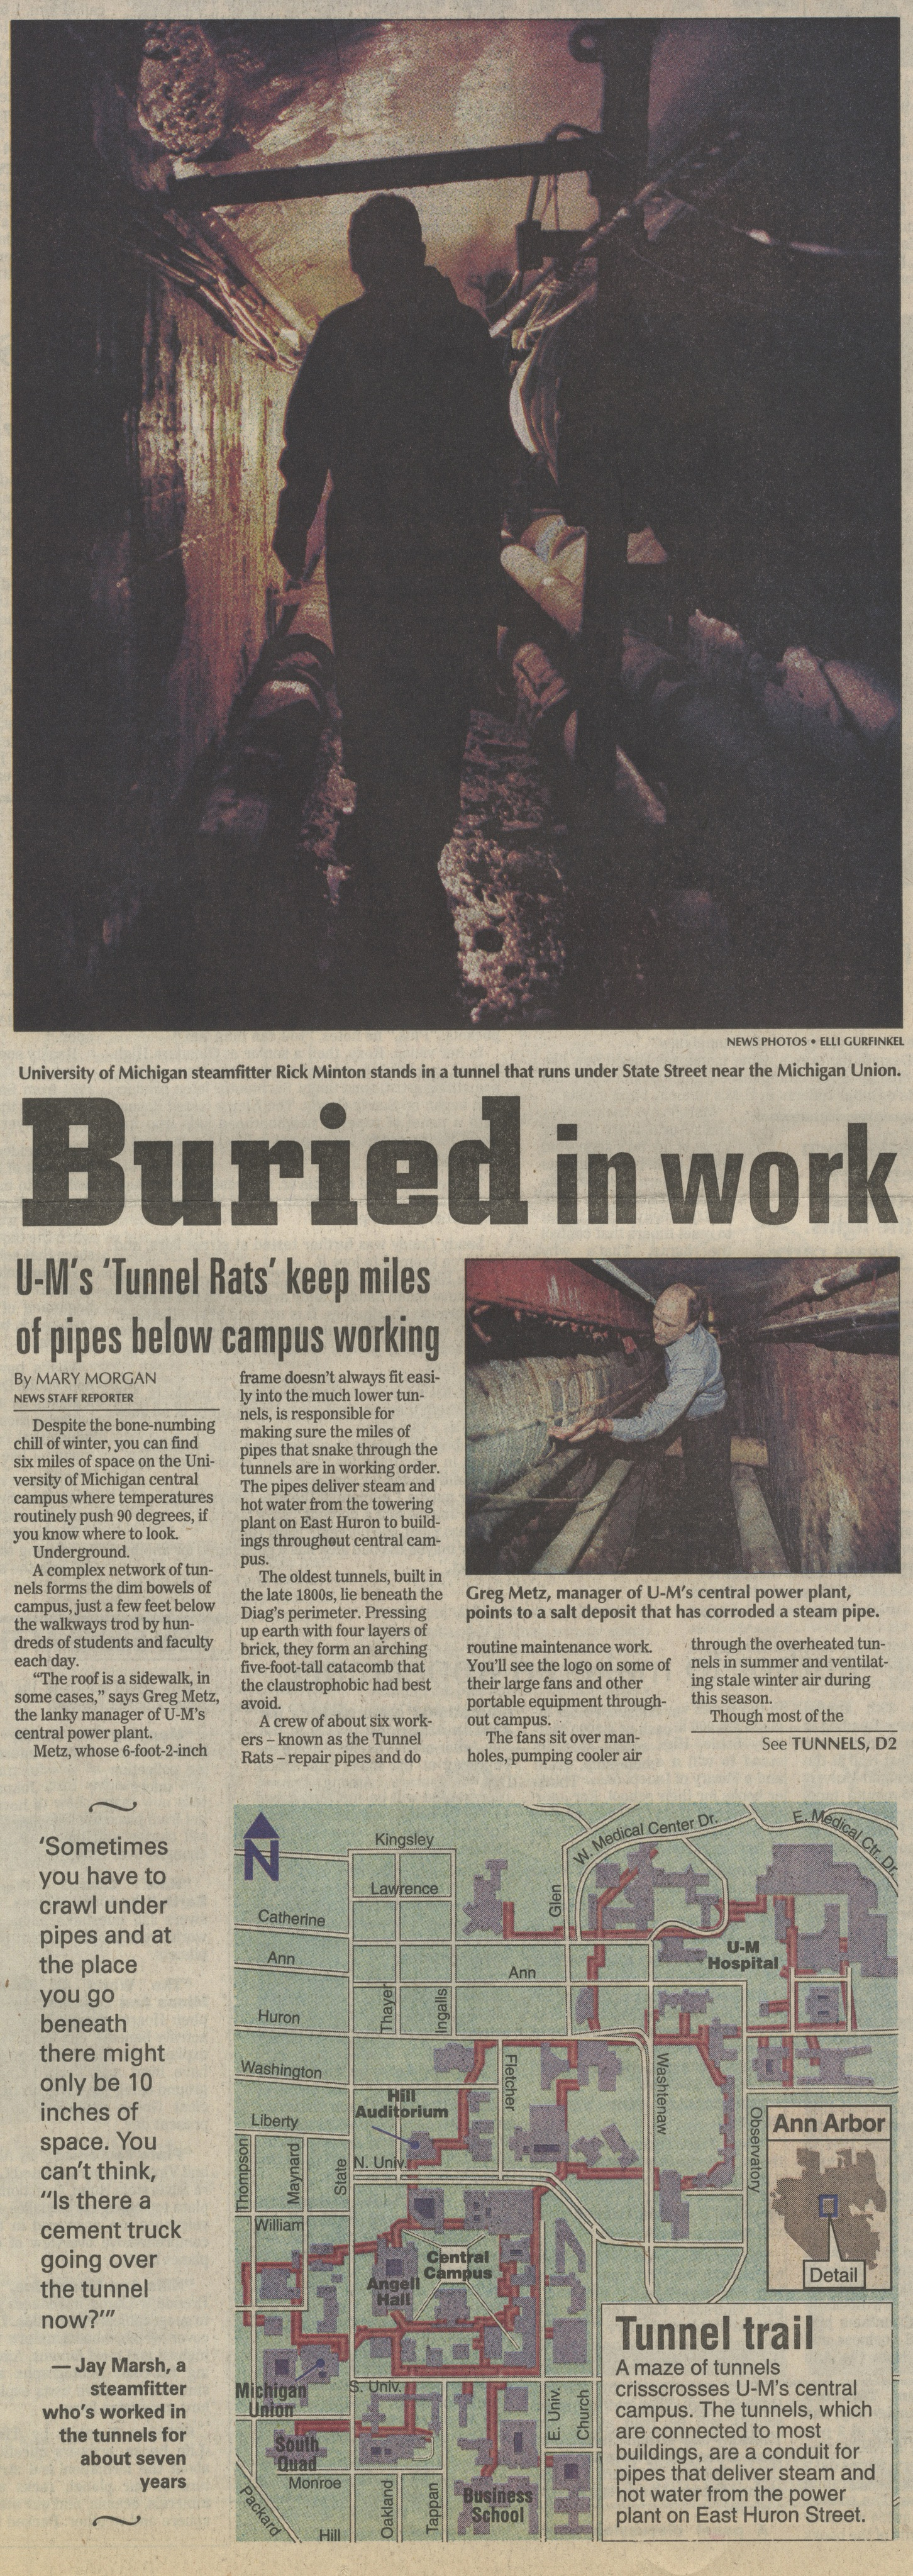 Buried In Work image